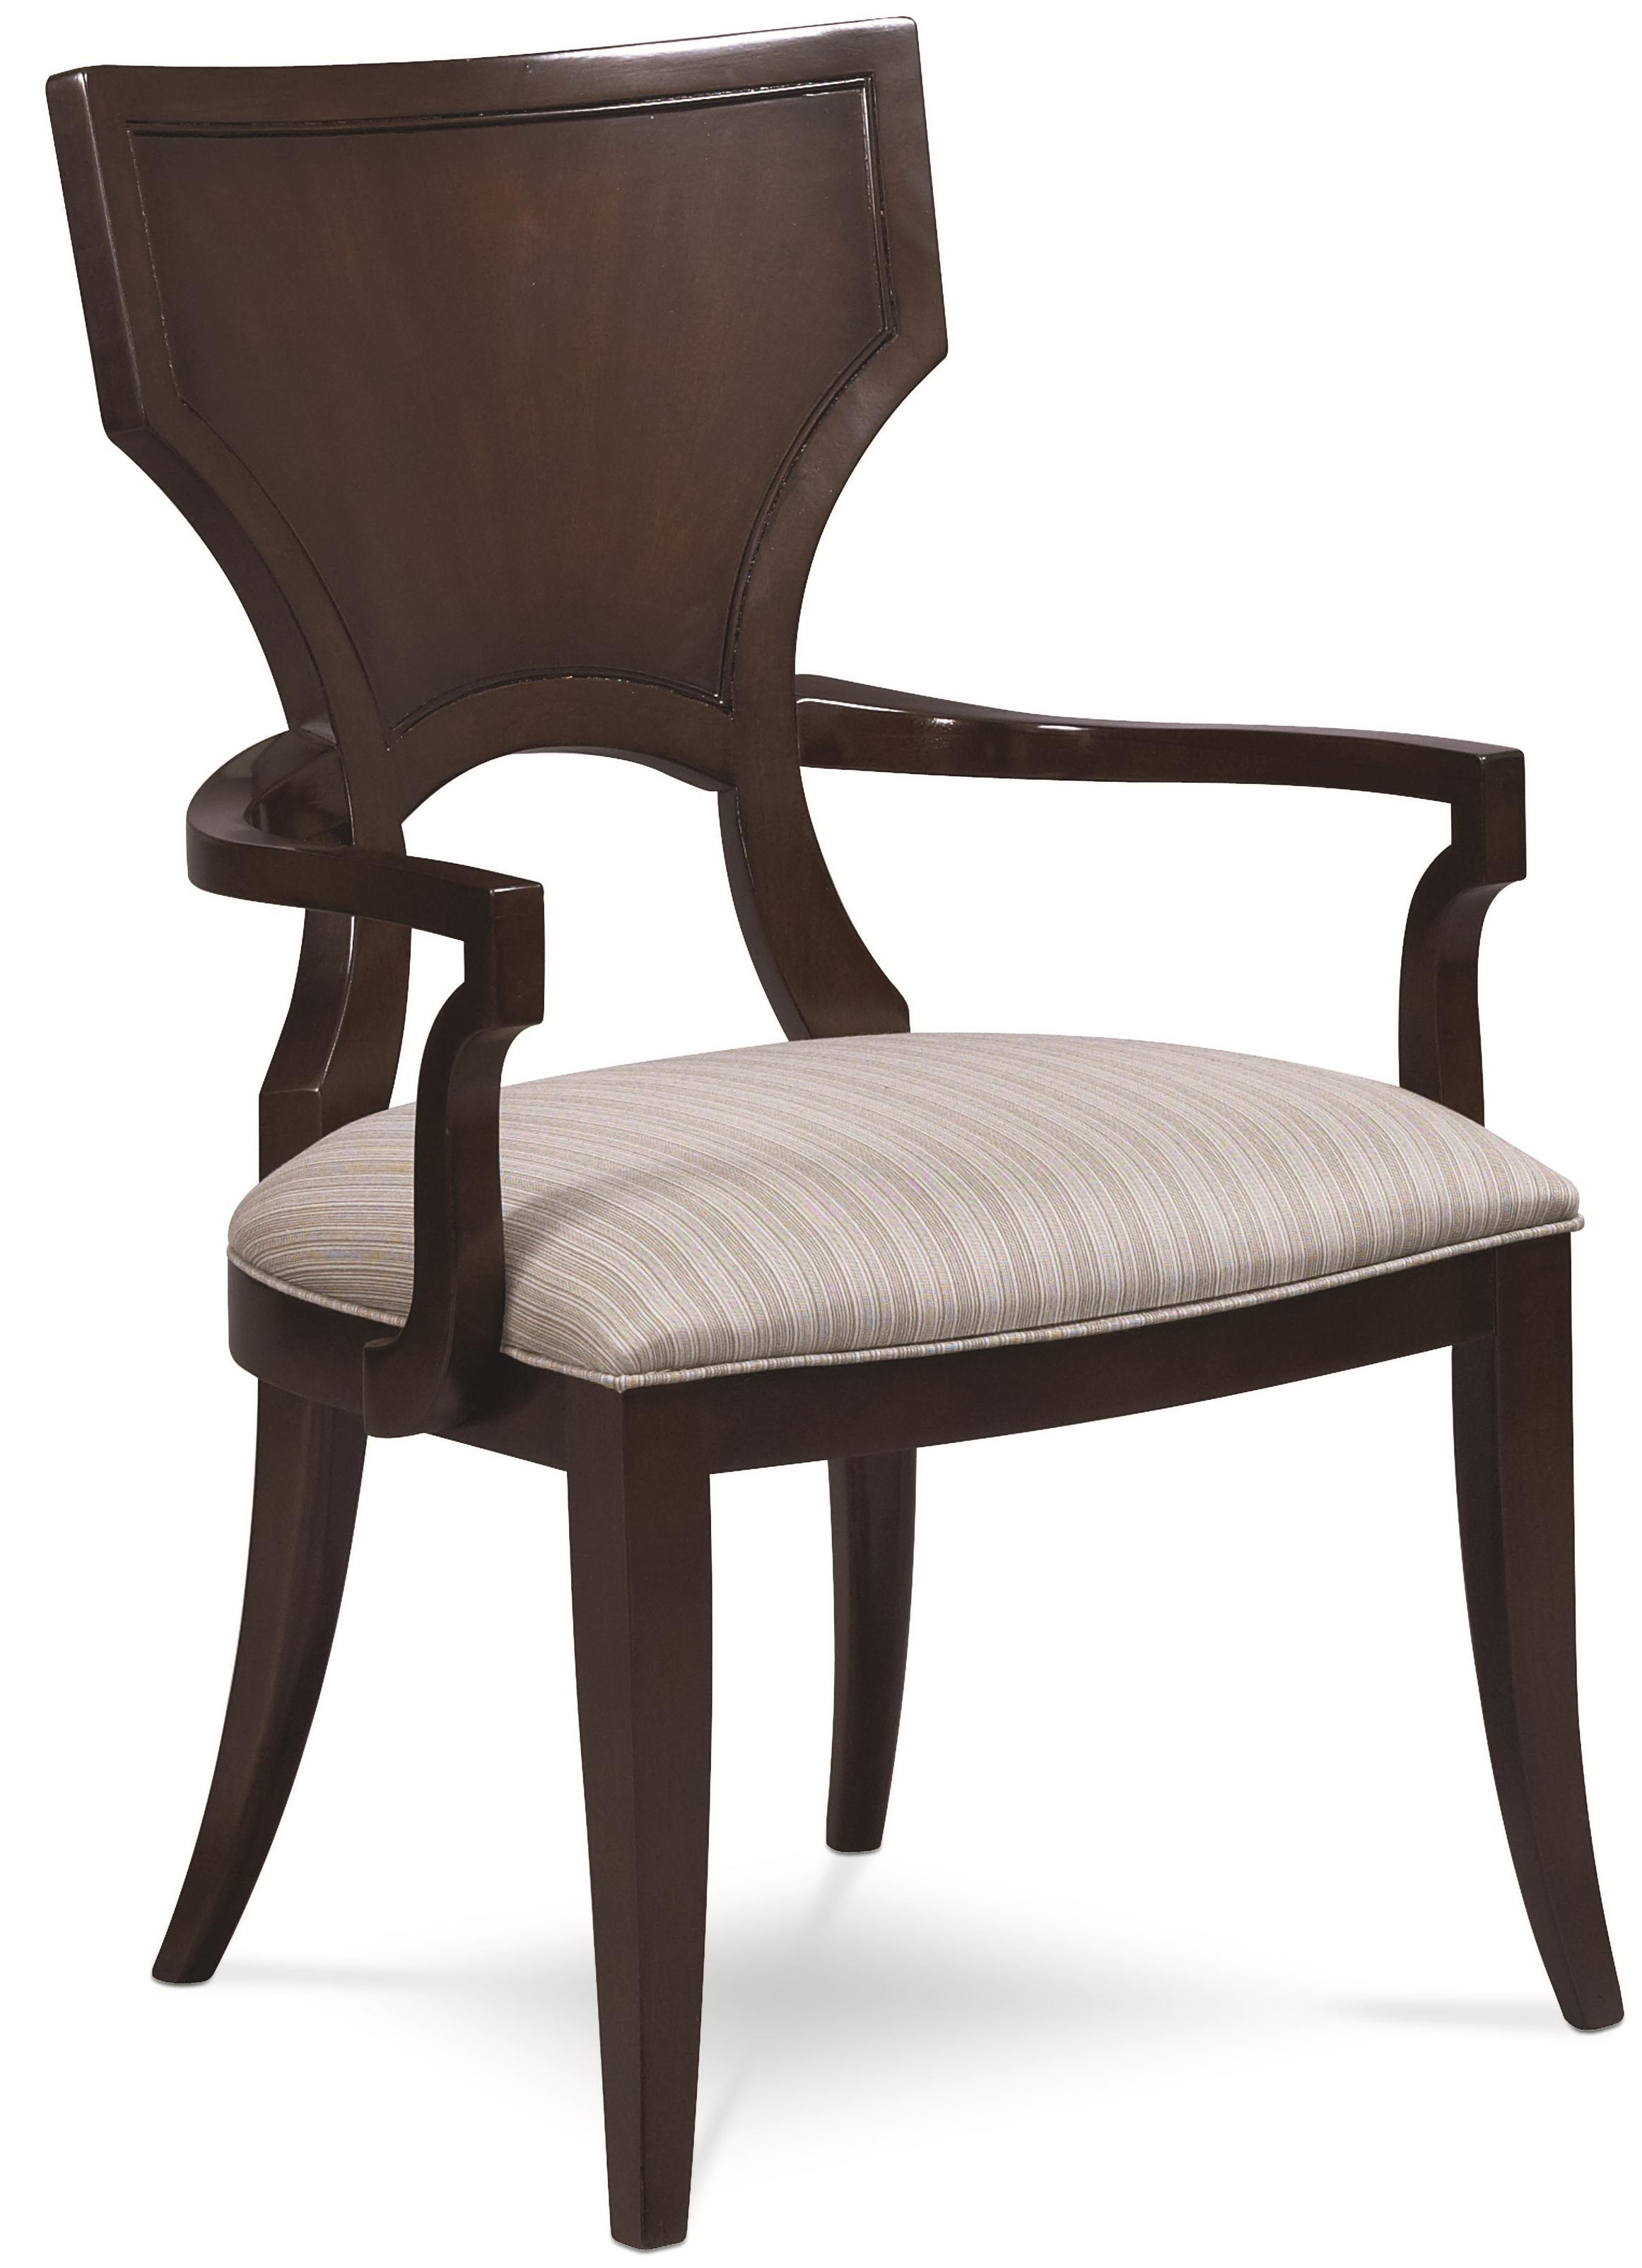 Thomasville® Spellbound Arm Chair - Item Number: 82221-832